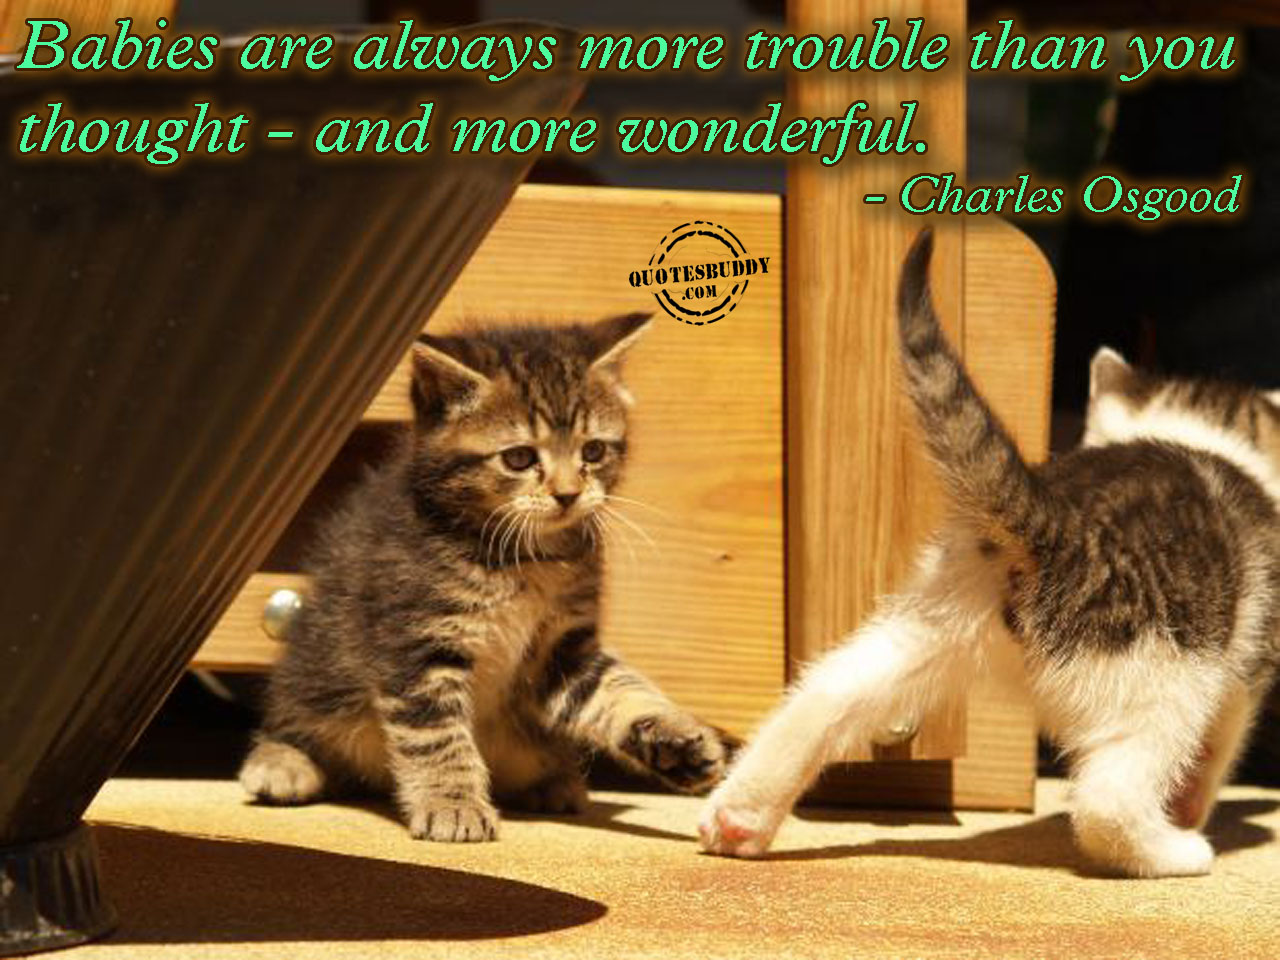 Babies Are Always More Trouble Than You Thought- And More Wonderful. - Charles Osgood